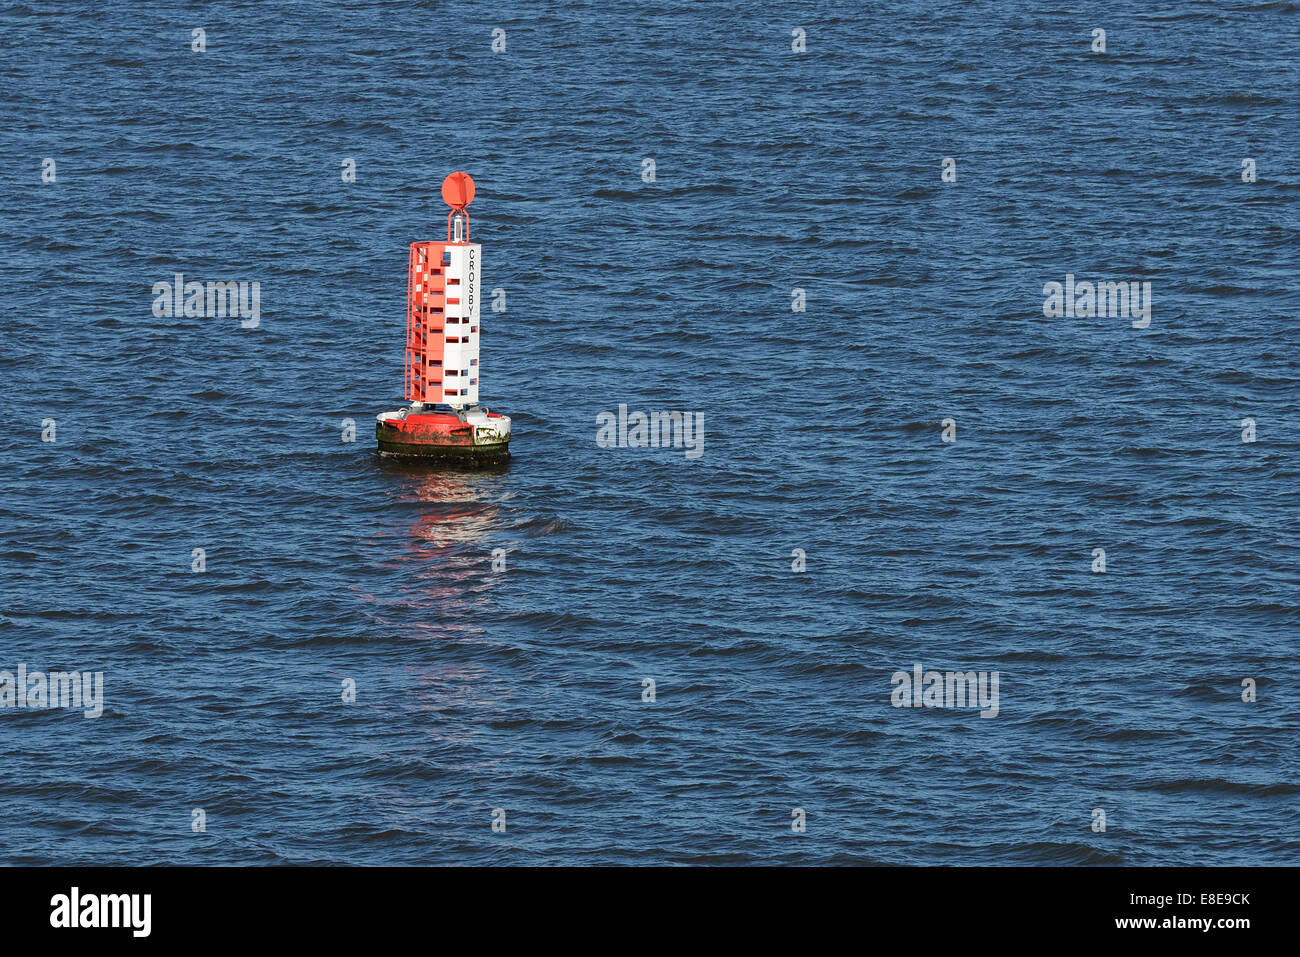 Navigation buoy marking the safe shipping channel in the River Mersey near Crosby Merseyside UK - Stock Image